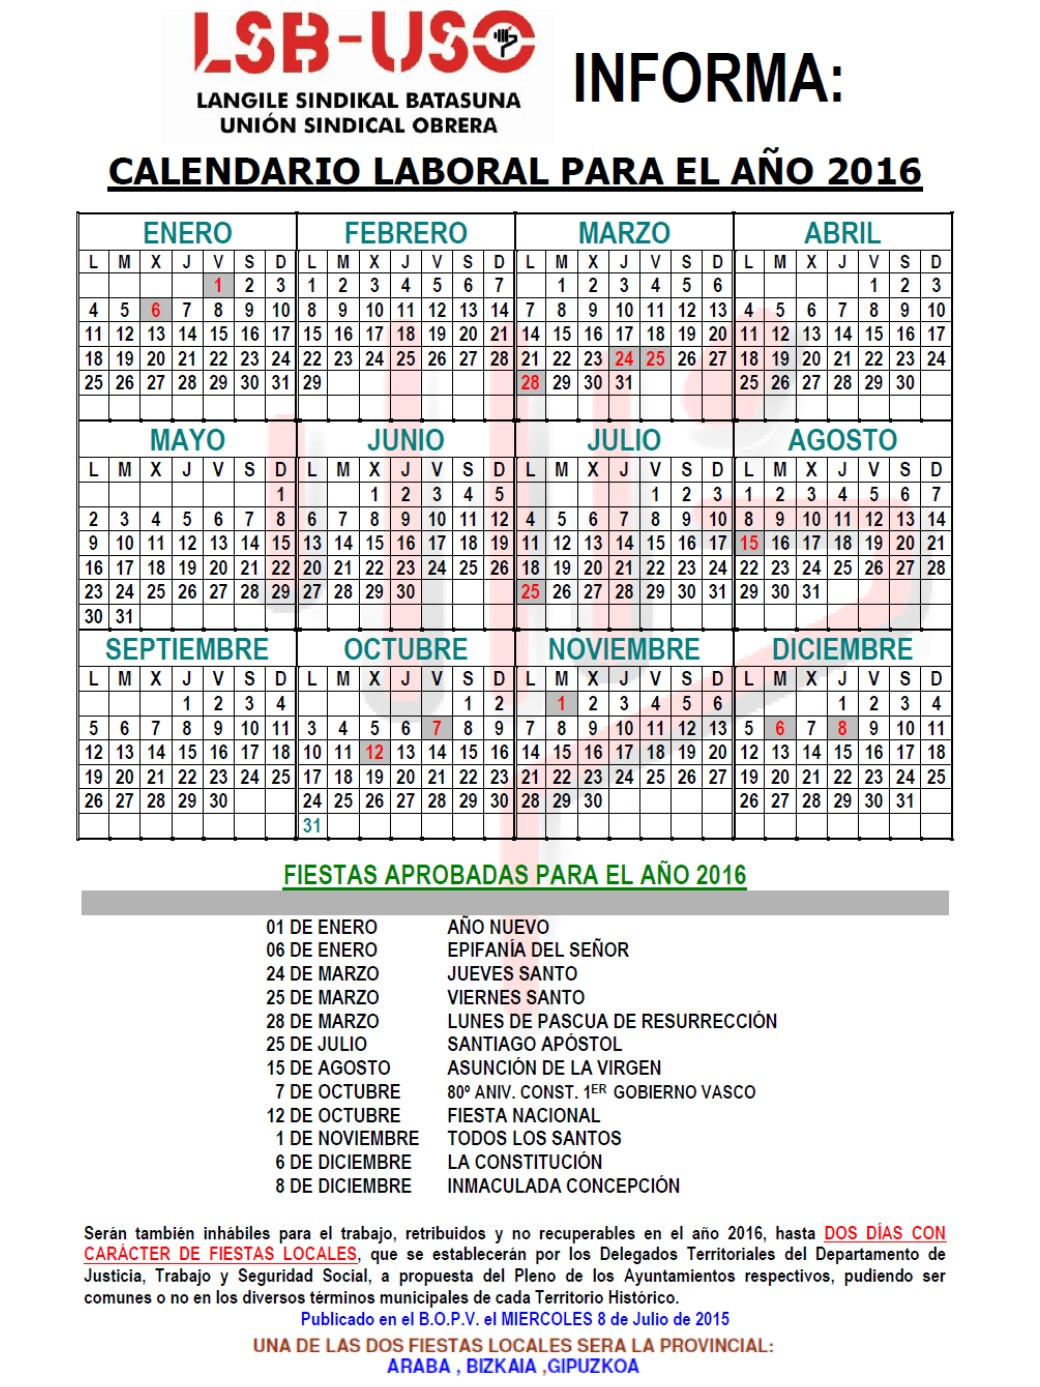 Calendario Laboral Bilbao.Calendario Laboral Lsb Uso